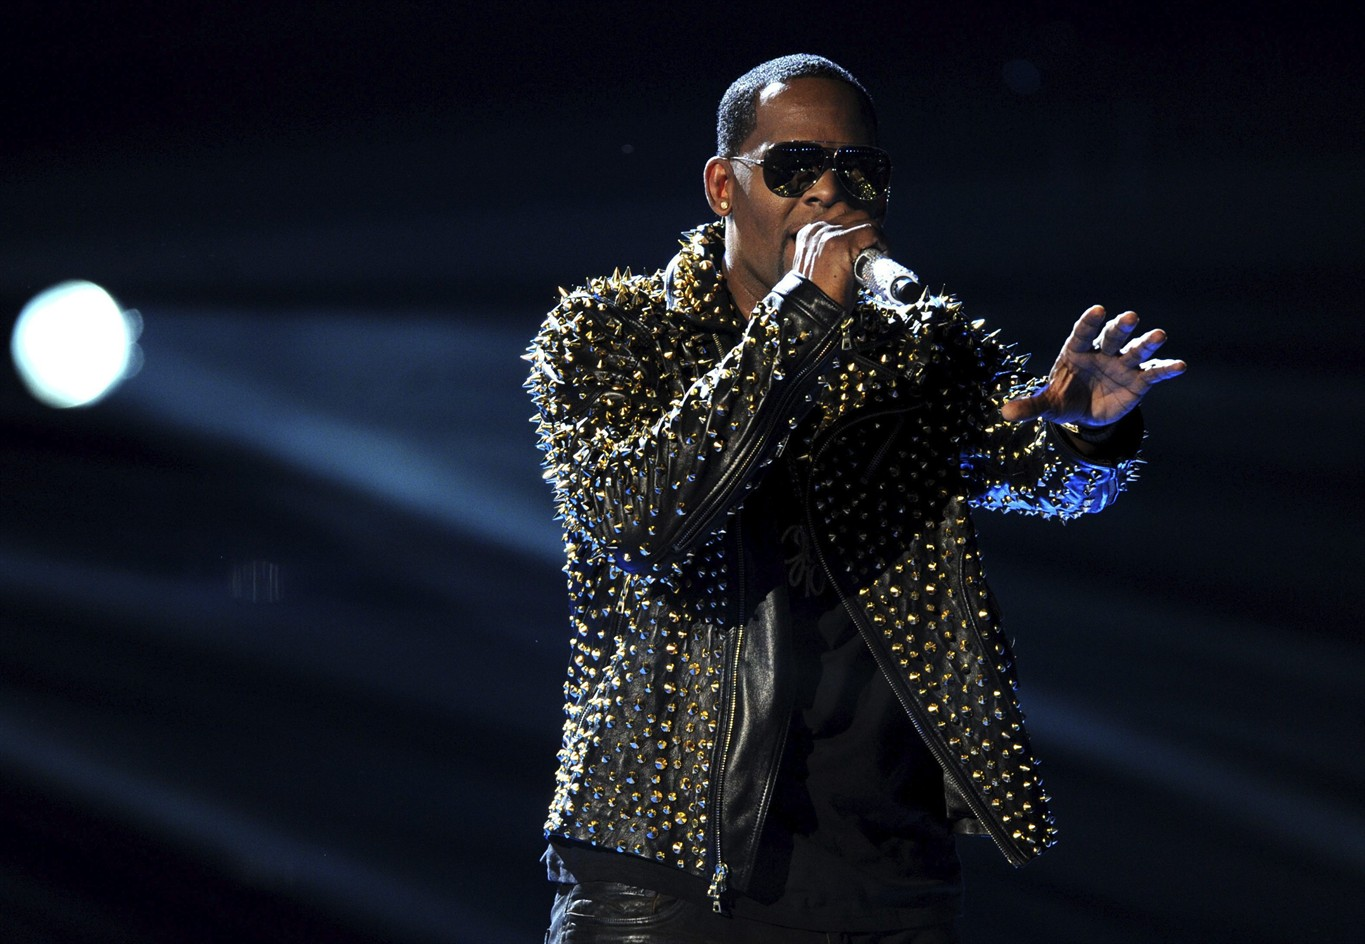 R Kelly to perform in Greensboro and Raleigh this weekend